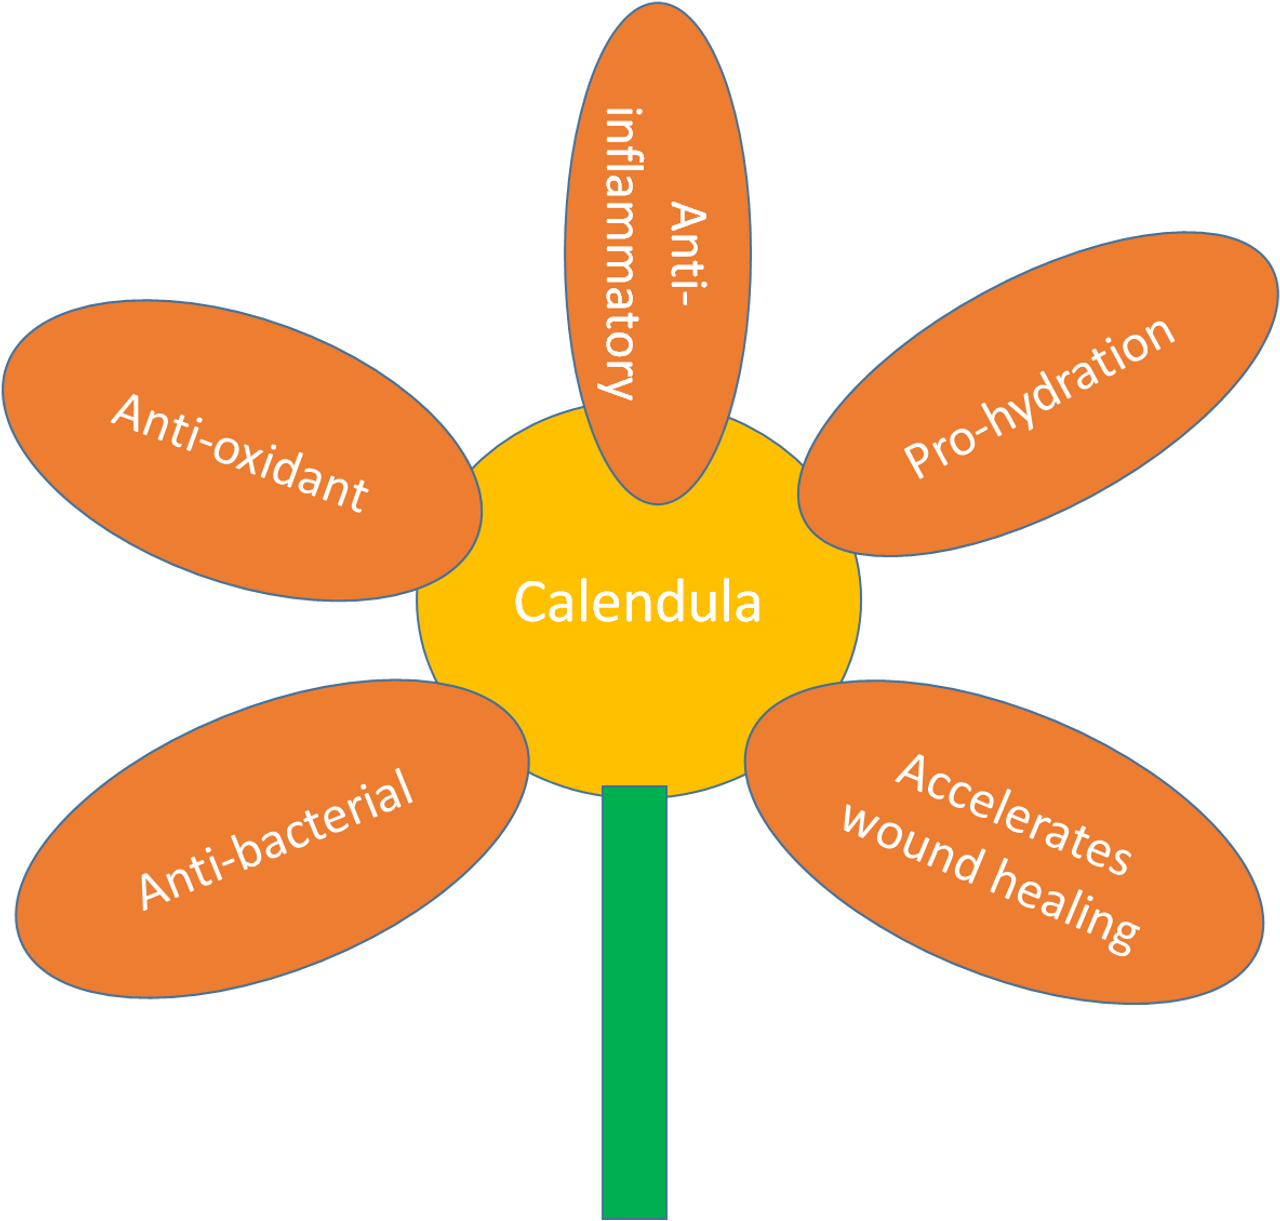 The Benefits of Calendula Officinalis on Protecting the Skin from the Harmful Effects of Radiation